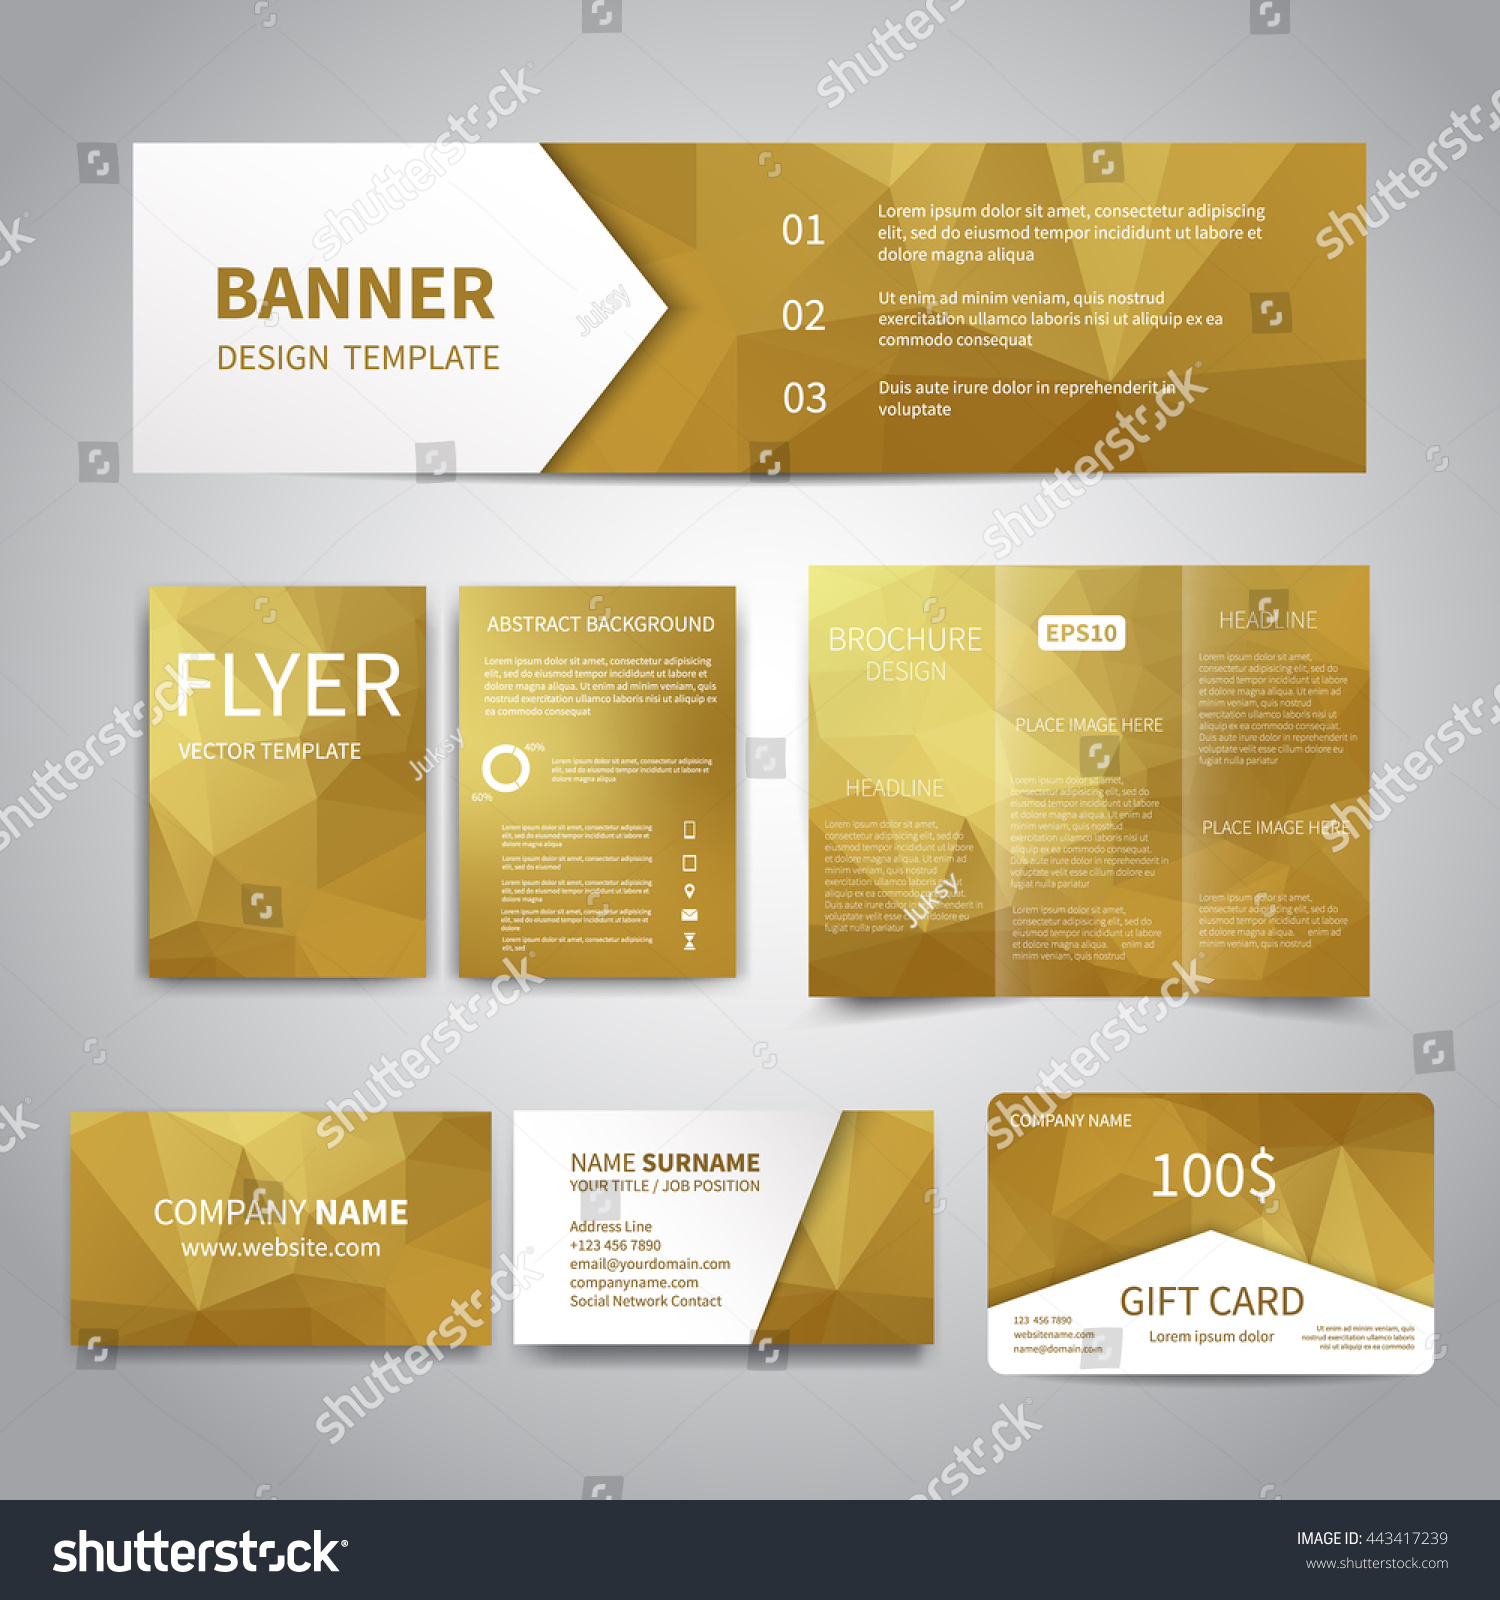 banner flyers brochure business cards gift stock vector 443417239 banner flyers brochure business cards gift card design templates set geometric